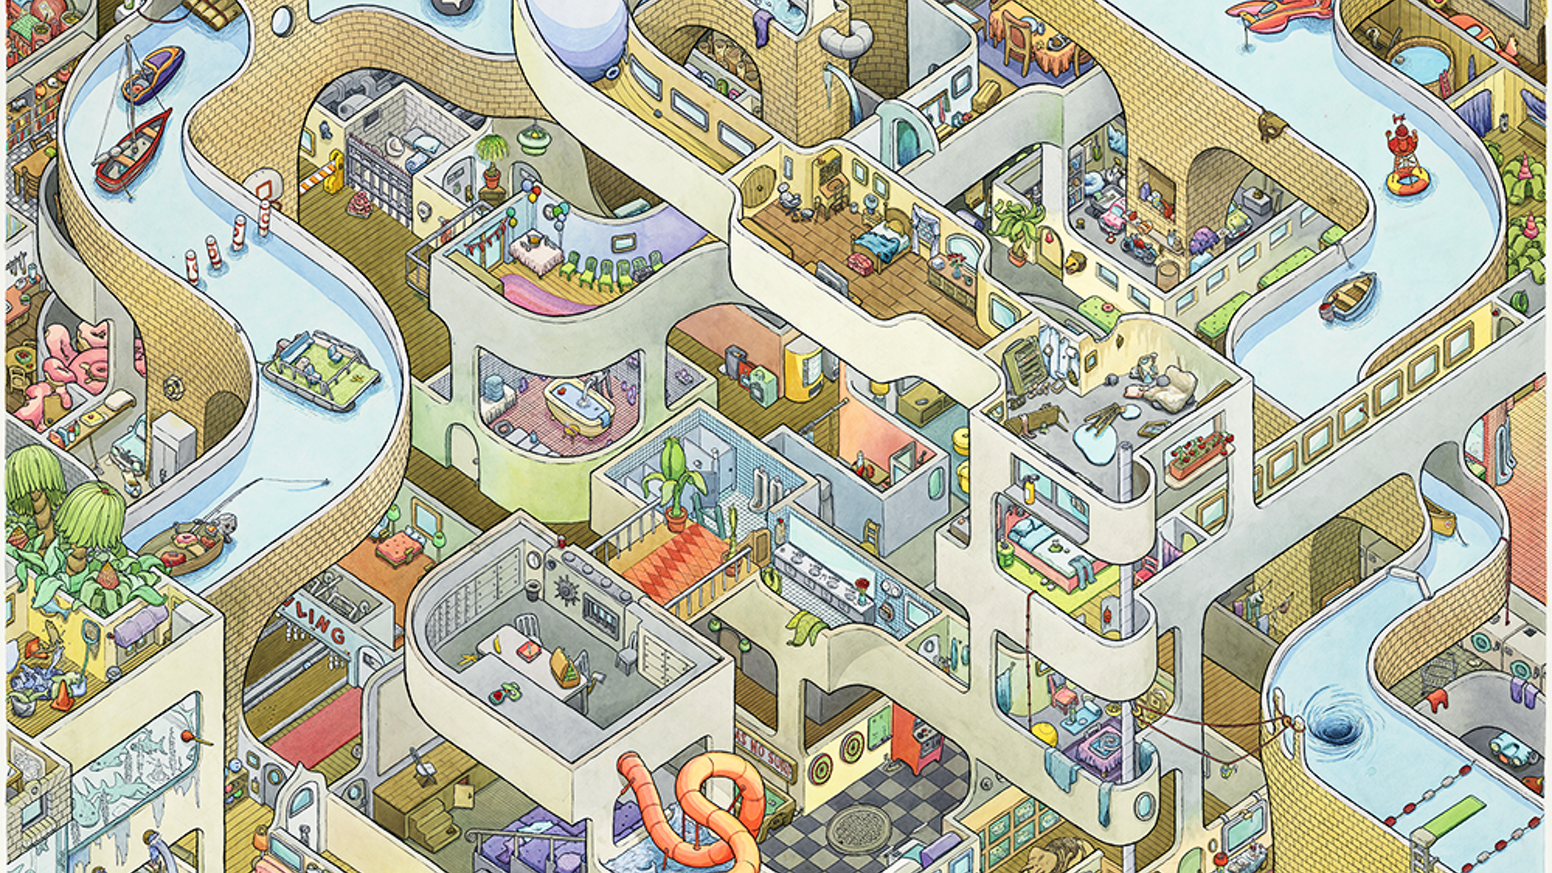 Thanks to all of my backers - BIG CANAL was a huge success. I'm now working on the next phase: BIG HOSPITAL! I plan to launch it on or before May 1, 2015.